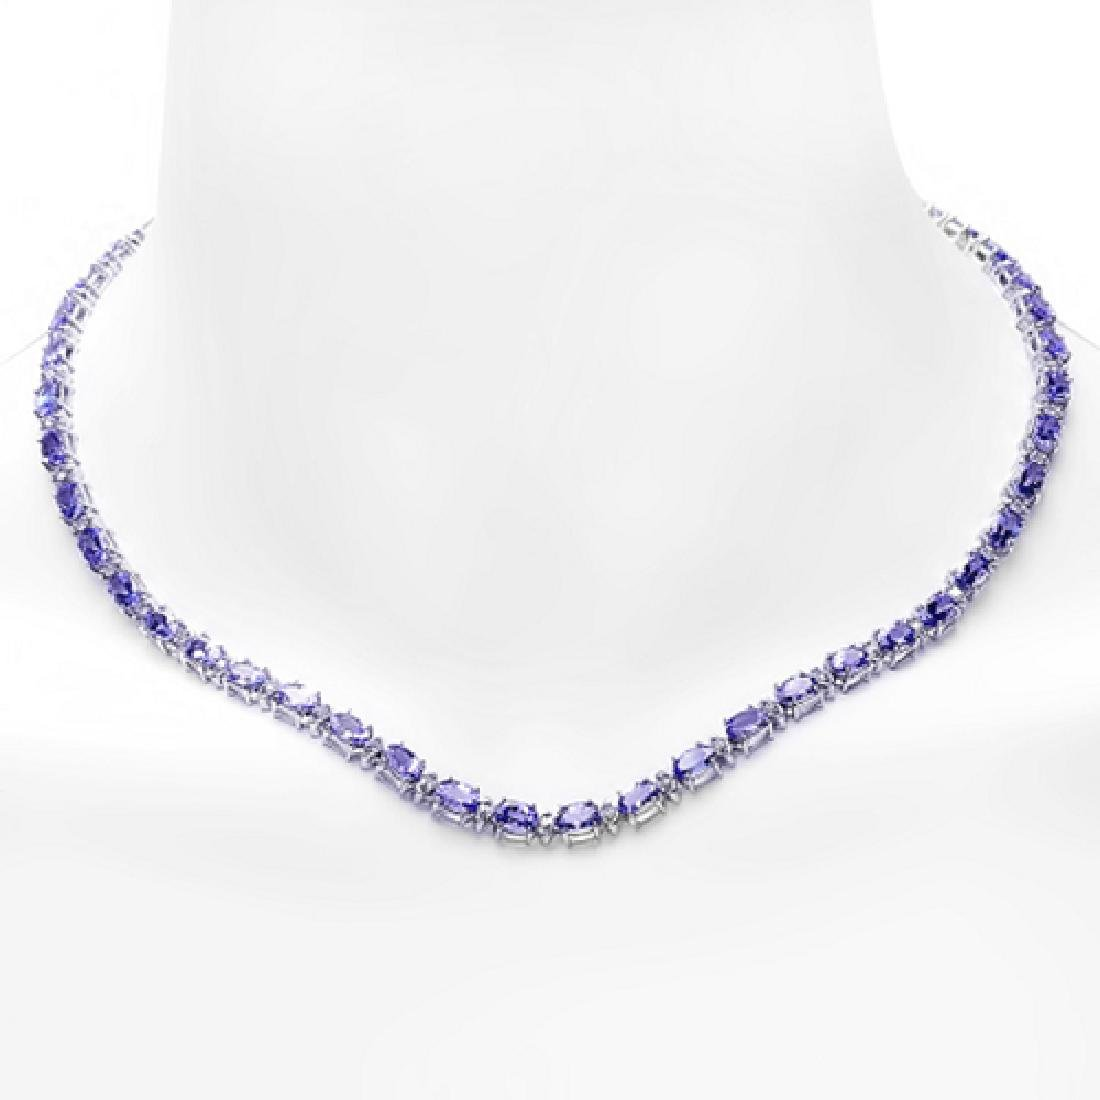 23.53 Carat Natural Tanzanite 18K Solid White Gold